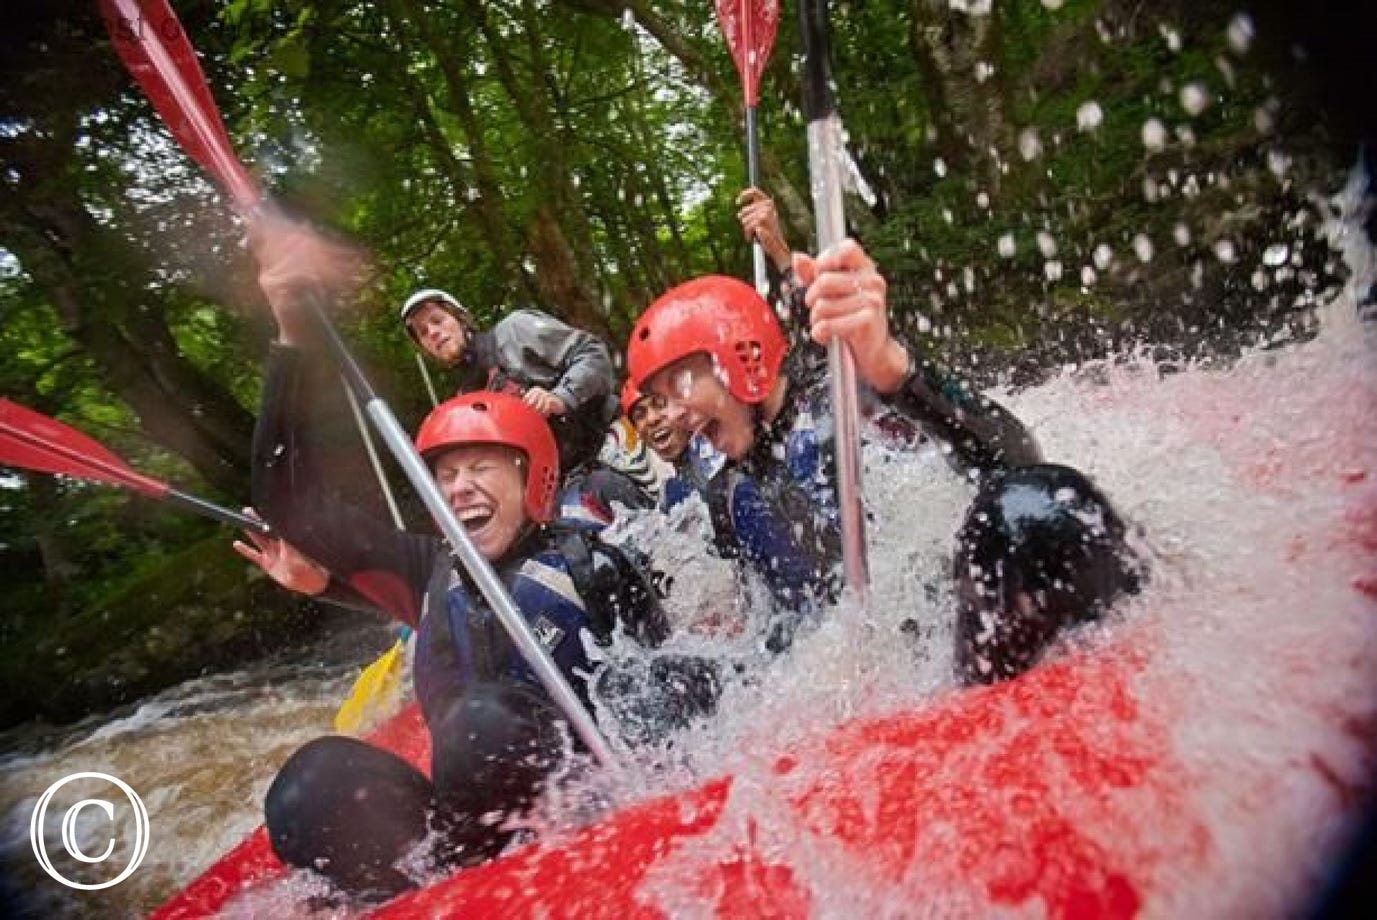 National White Water Centre, 4 miles from your cottage with hot tub